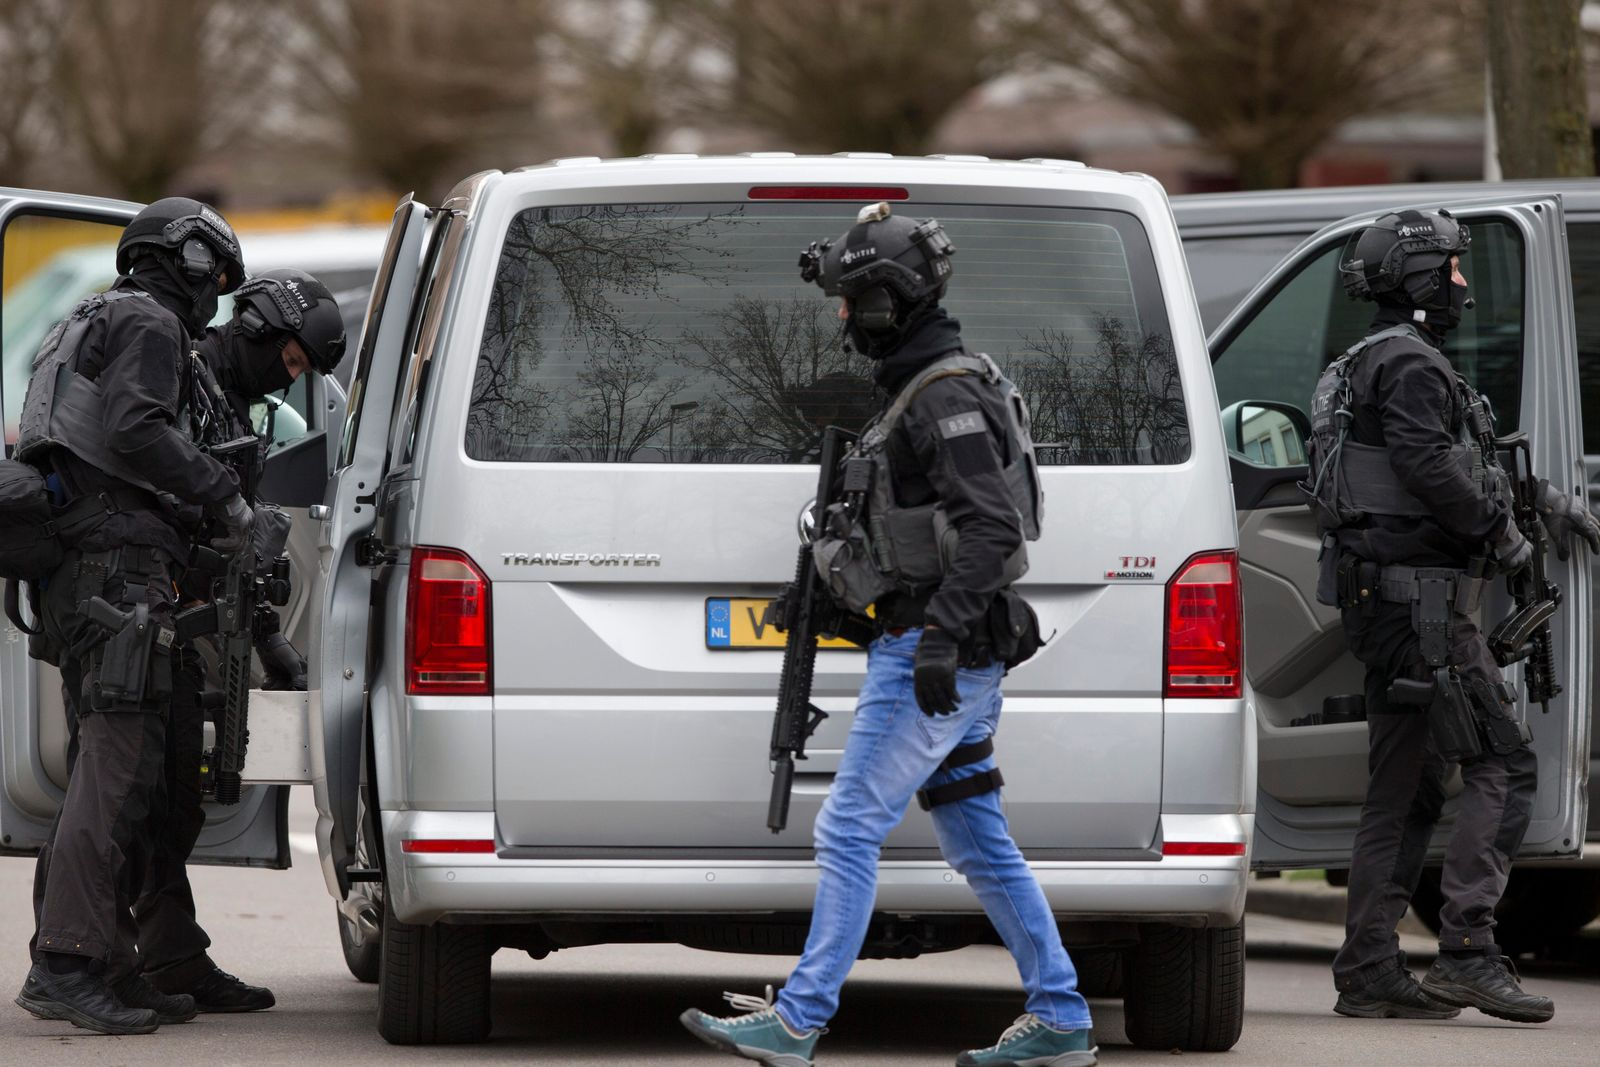 Dutch counter terrorism police prepare to enter a house after a shooting incident in Utrecht, Netherlands, Monday, March 18, 2019. (AP Photo/Peter Dejong)